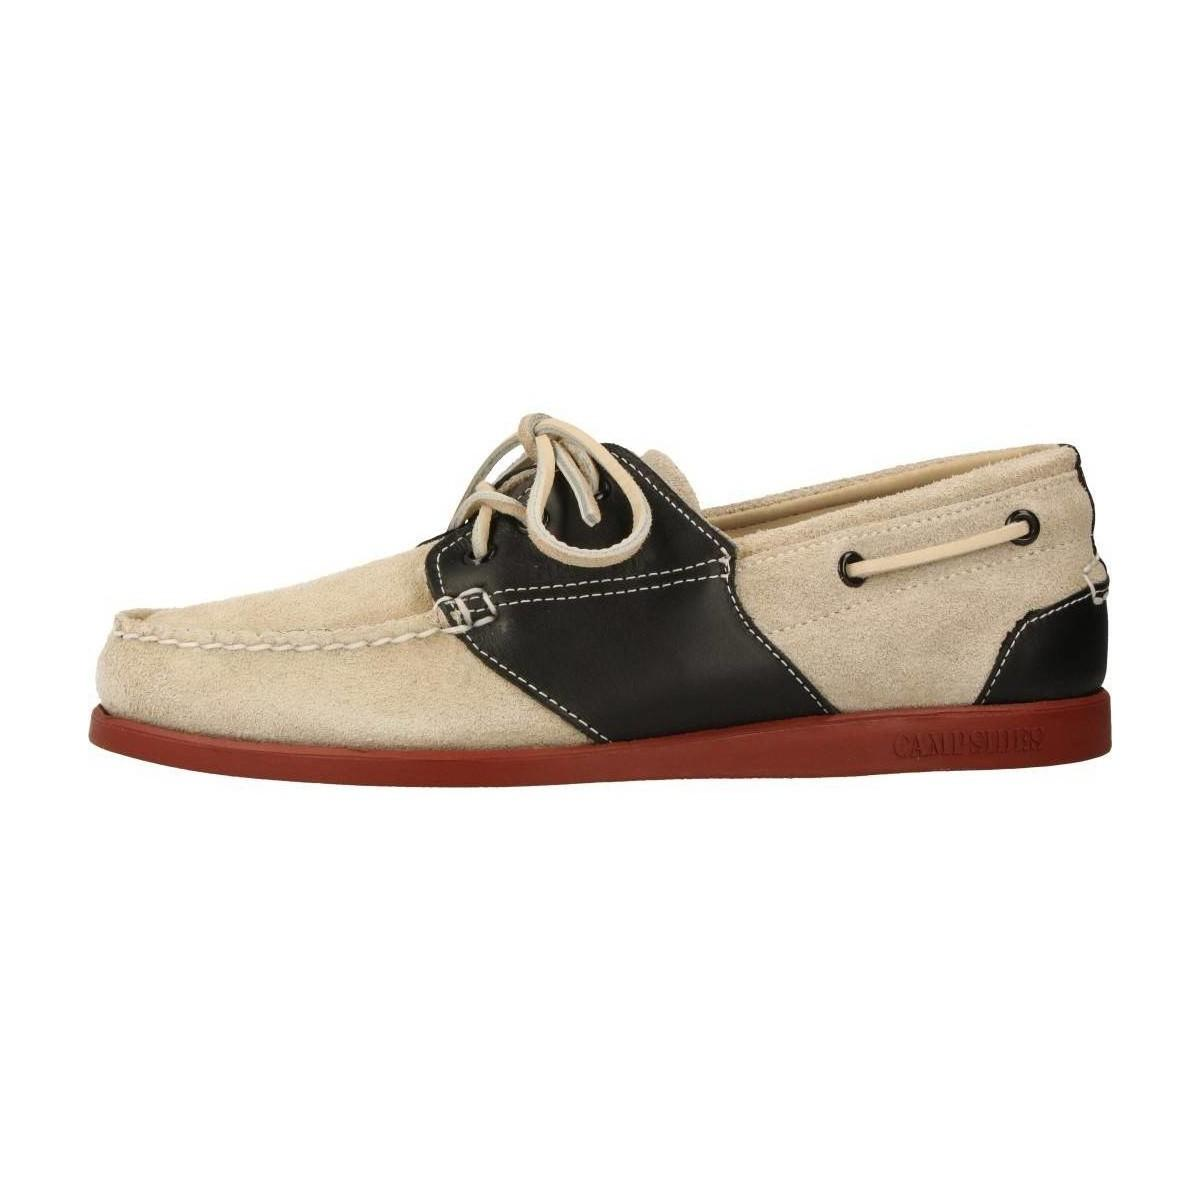 Sebago 71301s Men's Loafers / Casual Shoes In Red for Men